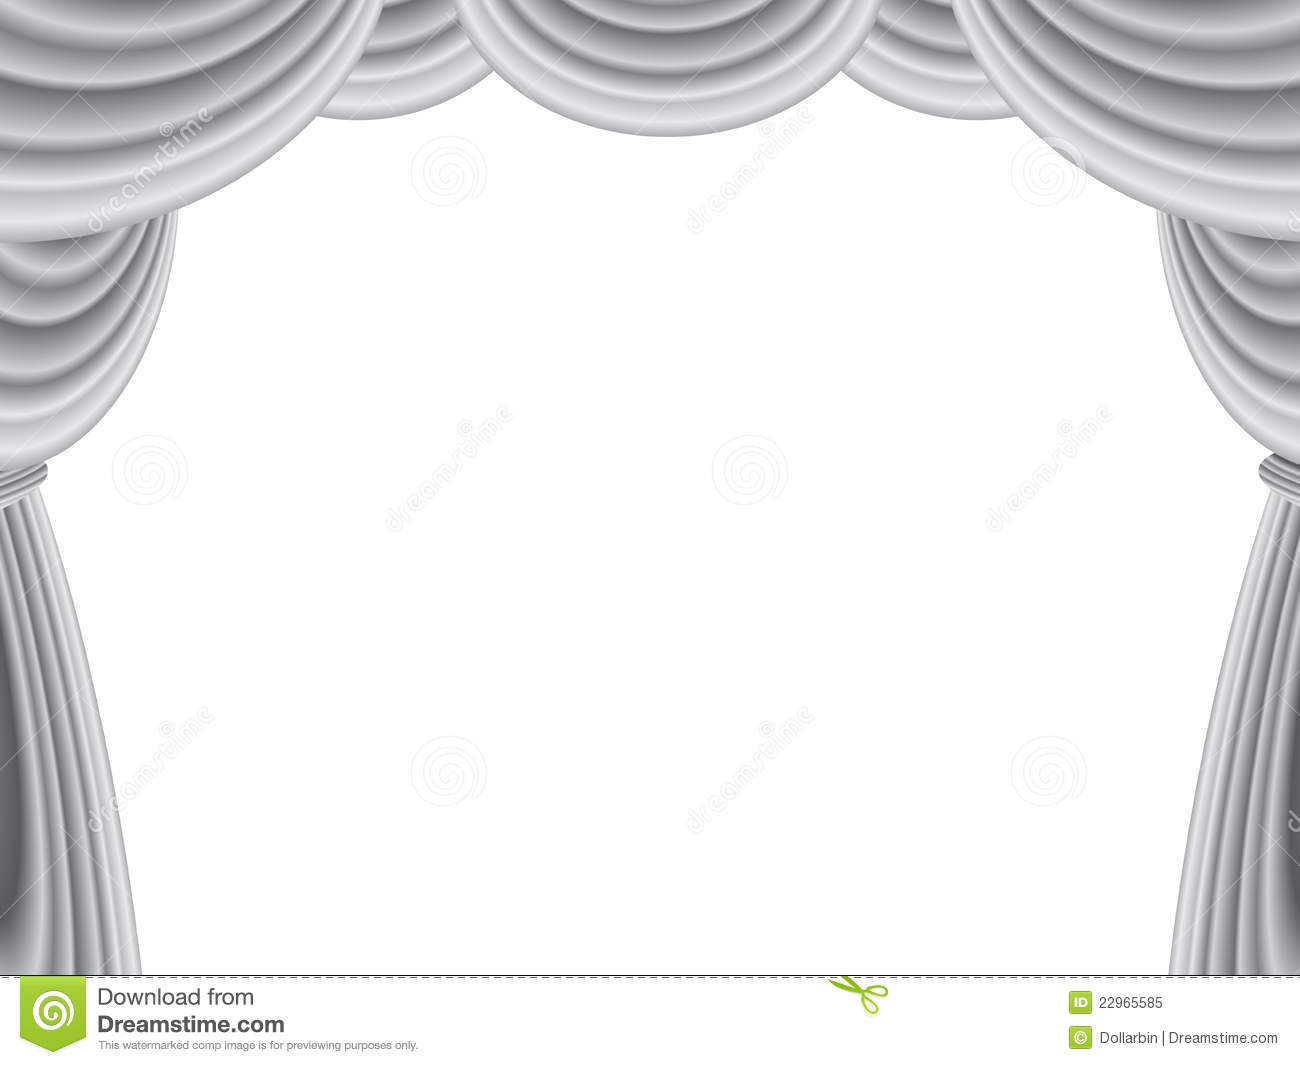 Download Velvet Stage Curtain Stock Vector Illustration Of Piece